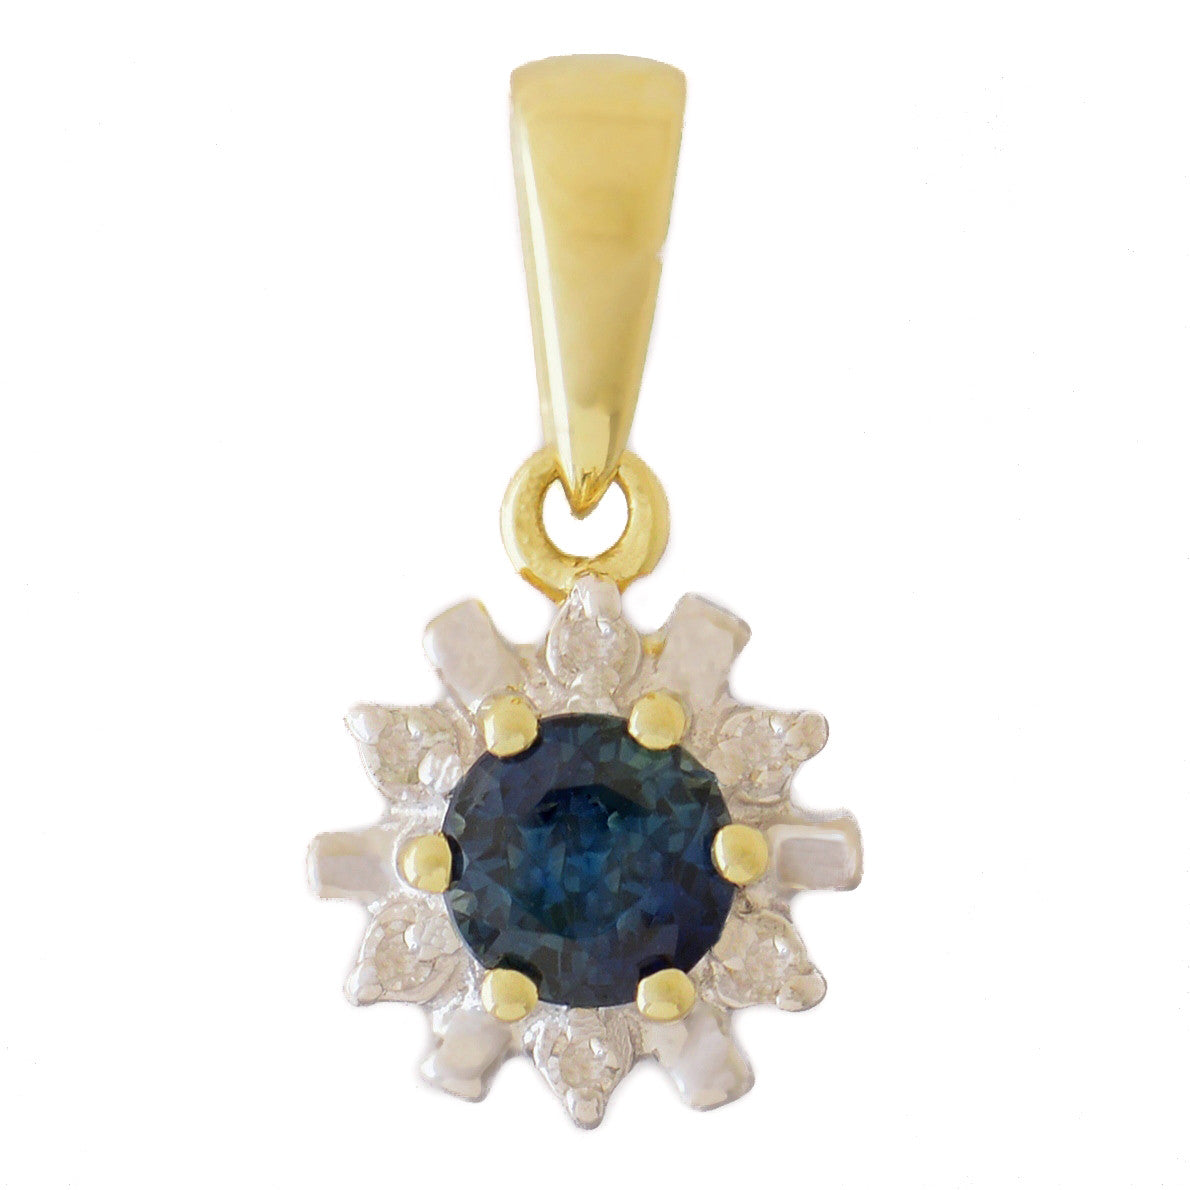 HANDMADE 9K SOLID GOLD 0.30CT NATURAL BLUE SAPPHIRE PENDANT WITH 6 DIAMONDS.